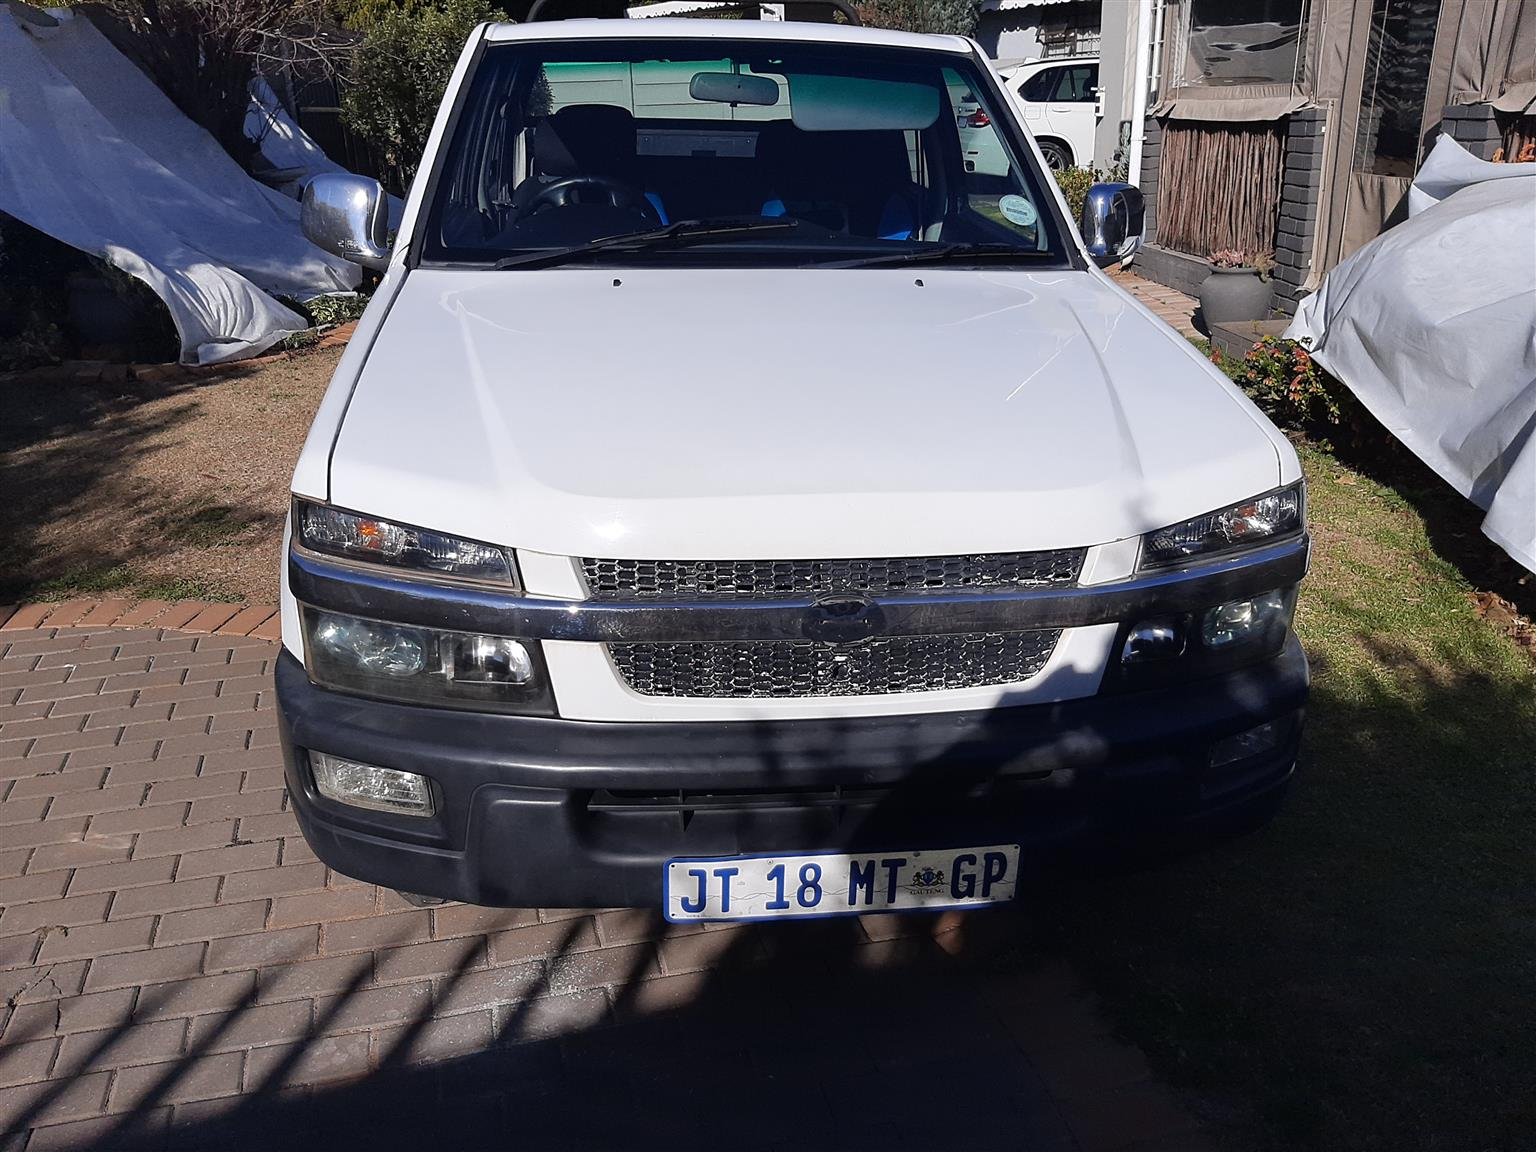 2020 reg.CMC dbl cab bakkie 2.4 petrol  in daily use, full hse